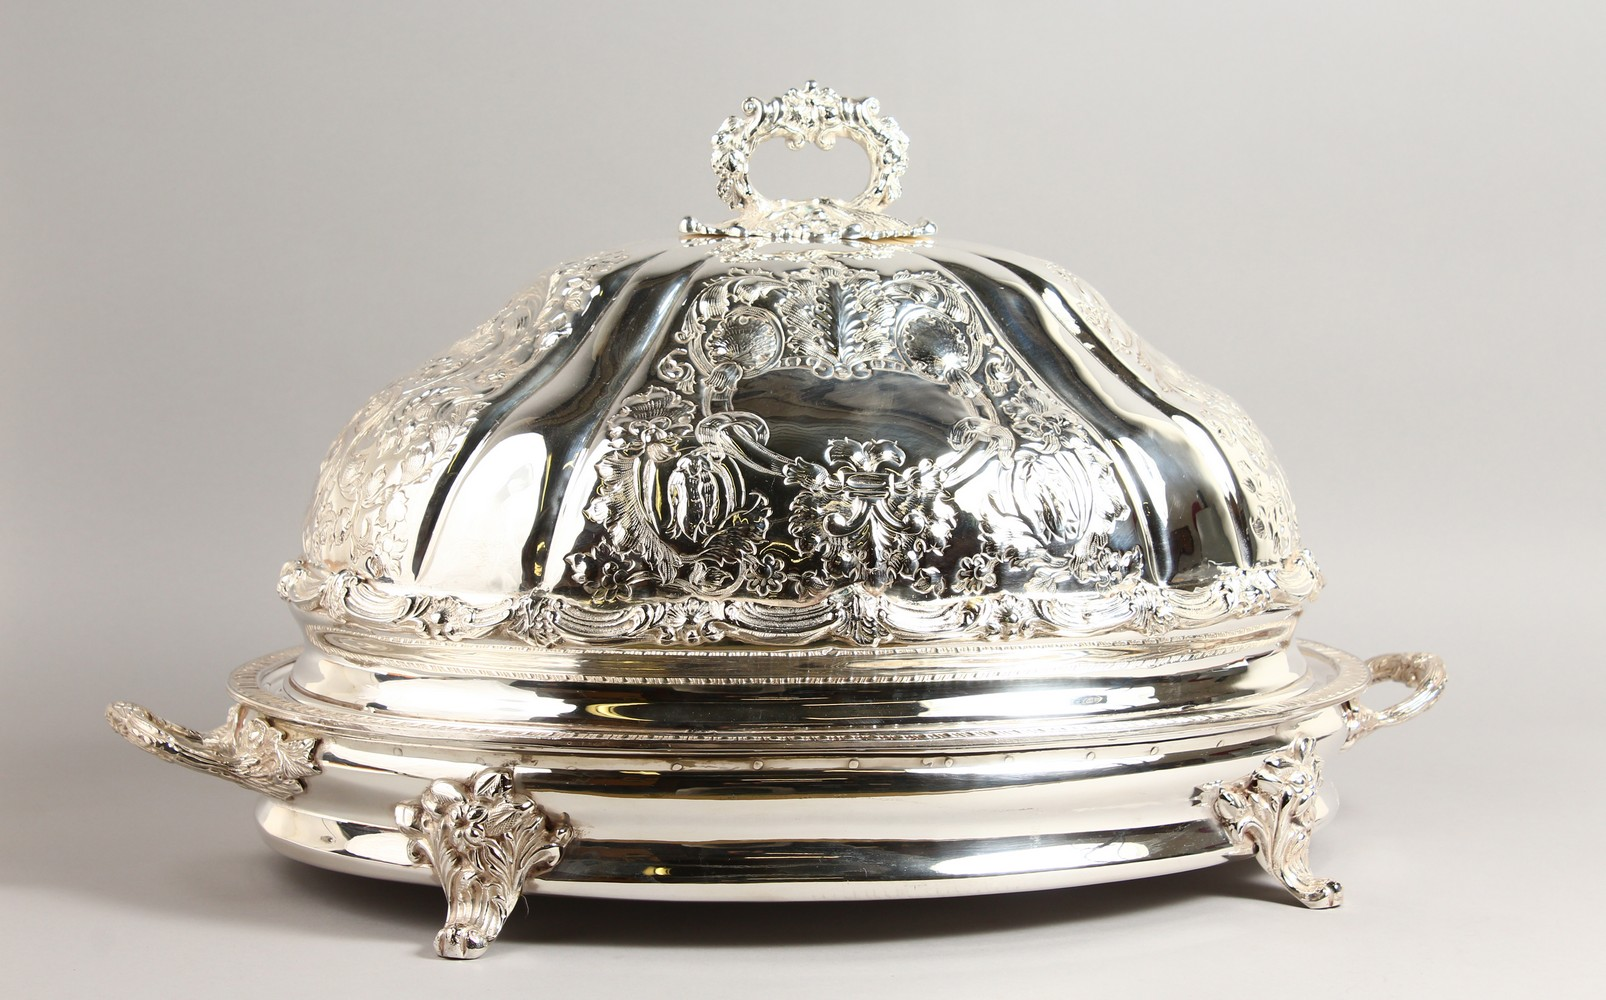 Lot 2058 - AN IMPRESSIVE LARGE VICTORIAN STYLE EMBOSSED MEAT DOME ON STAND. 26ins wide.